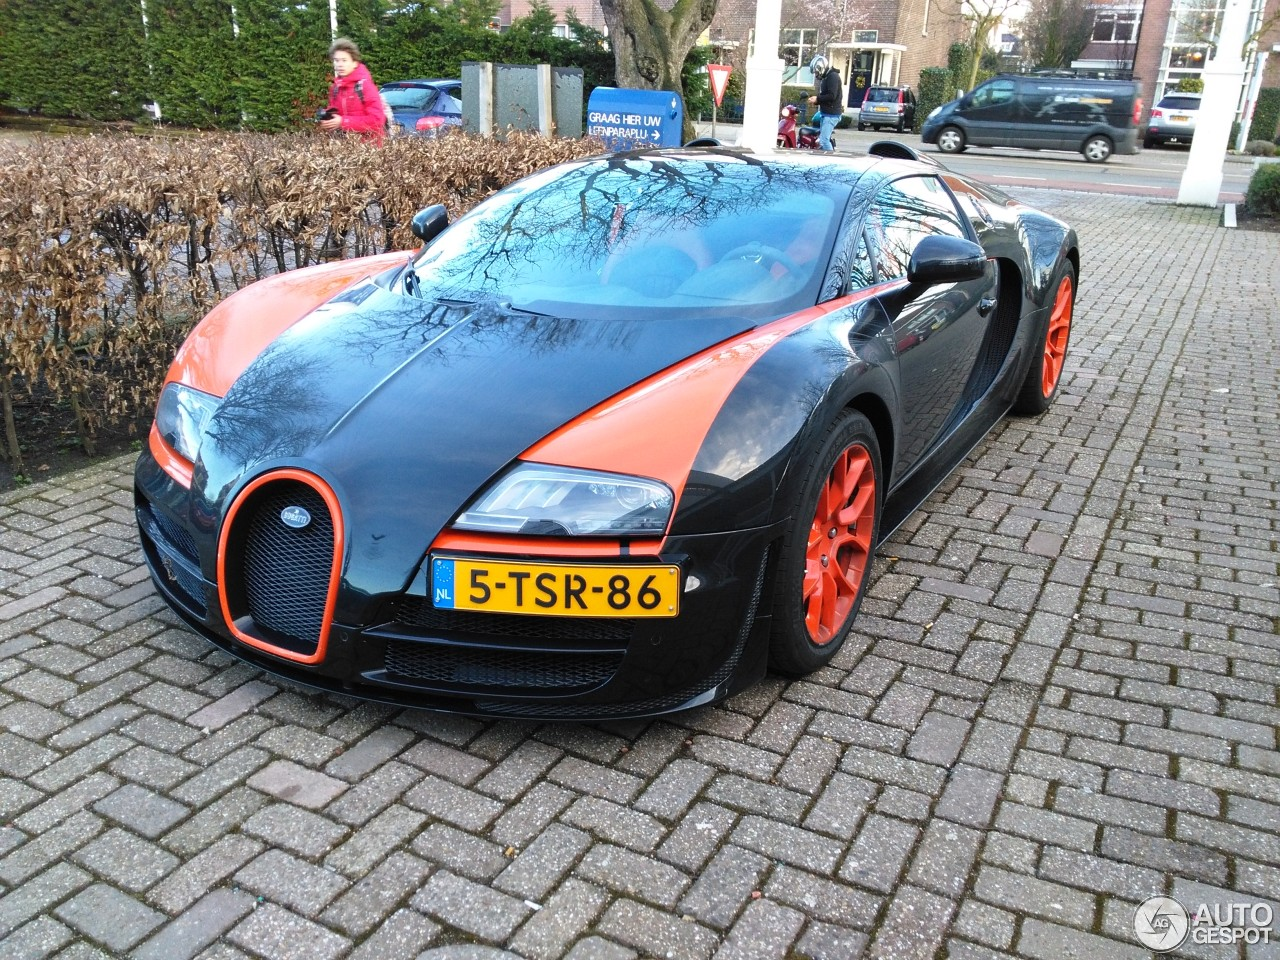 bugatti veyron 16 4 grand sport vitesse world record car edition 3 march 20. Black Bedroom Furniture Sets. Home Design Ideas